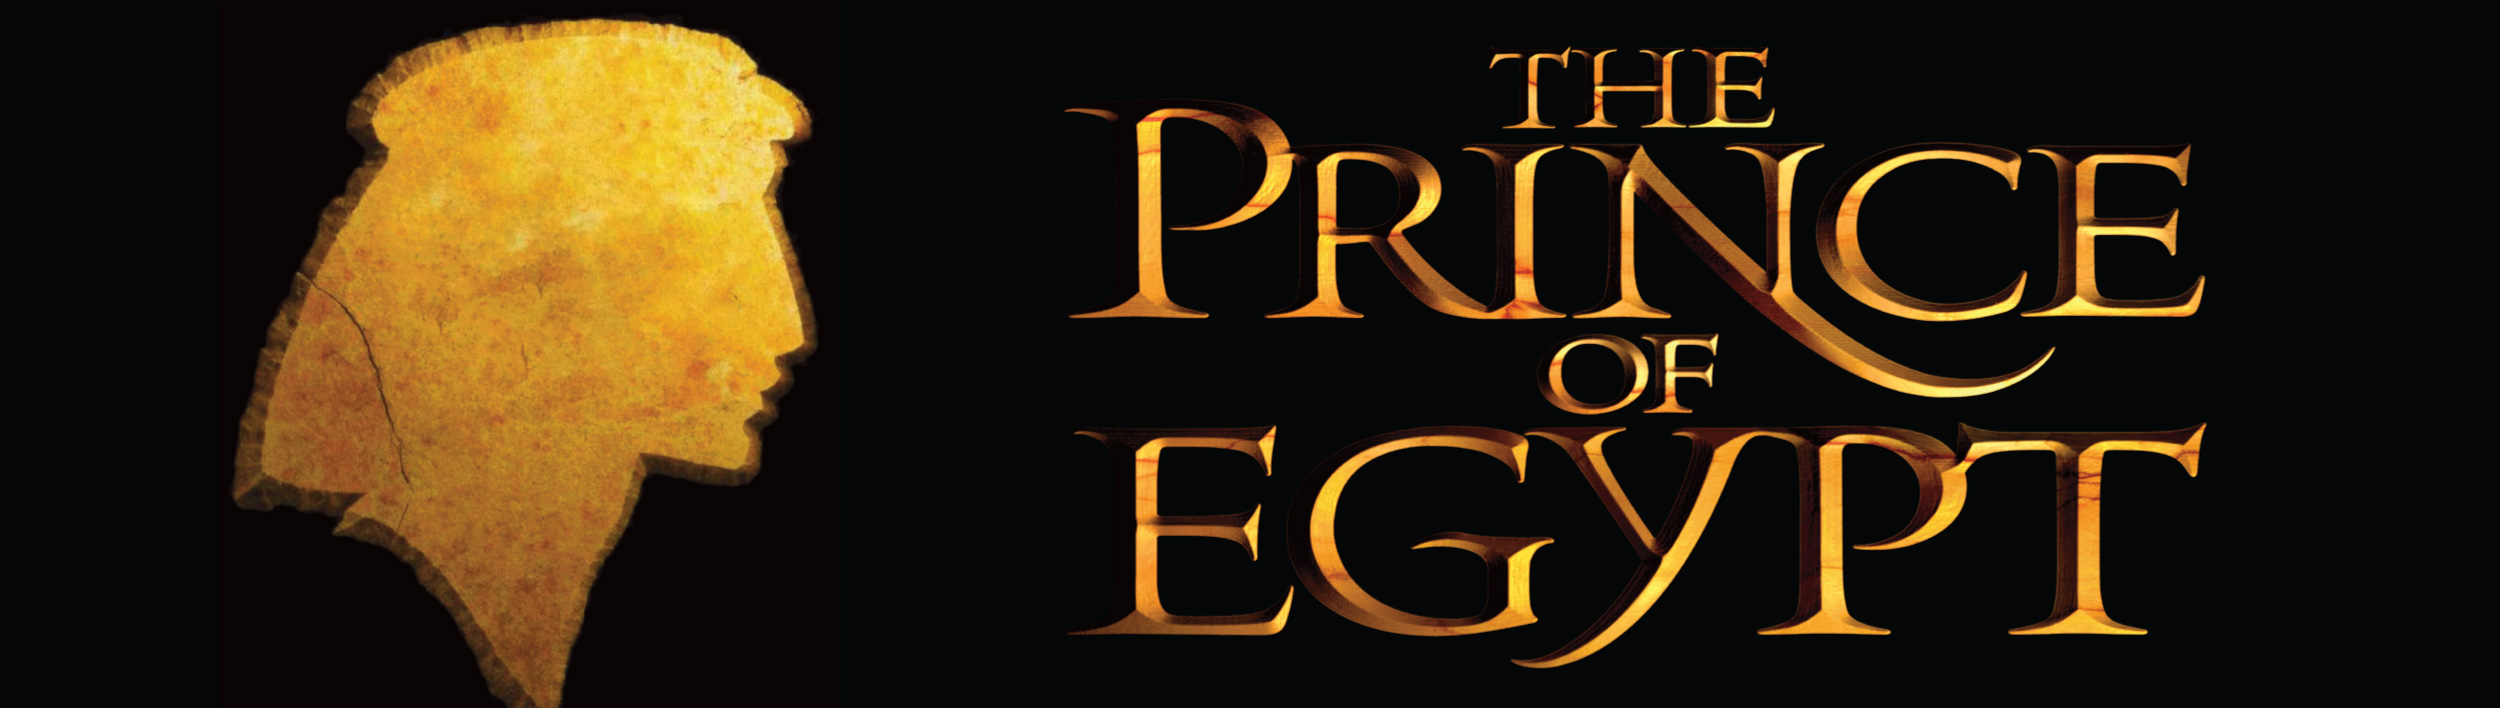 Prince of Egypt - The Cooper Company